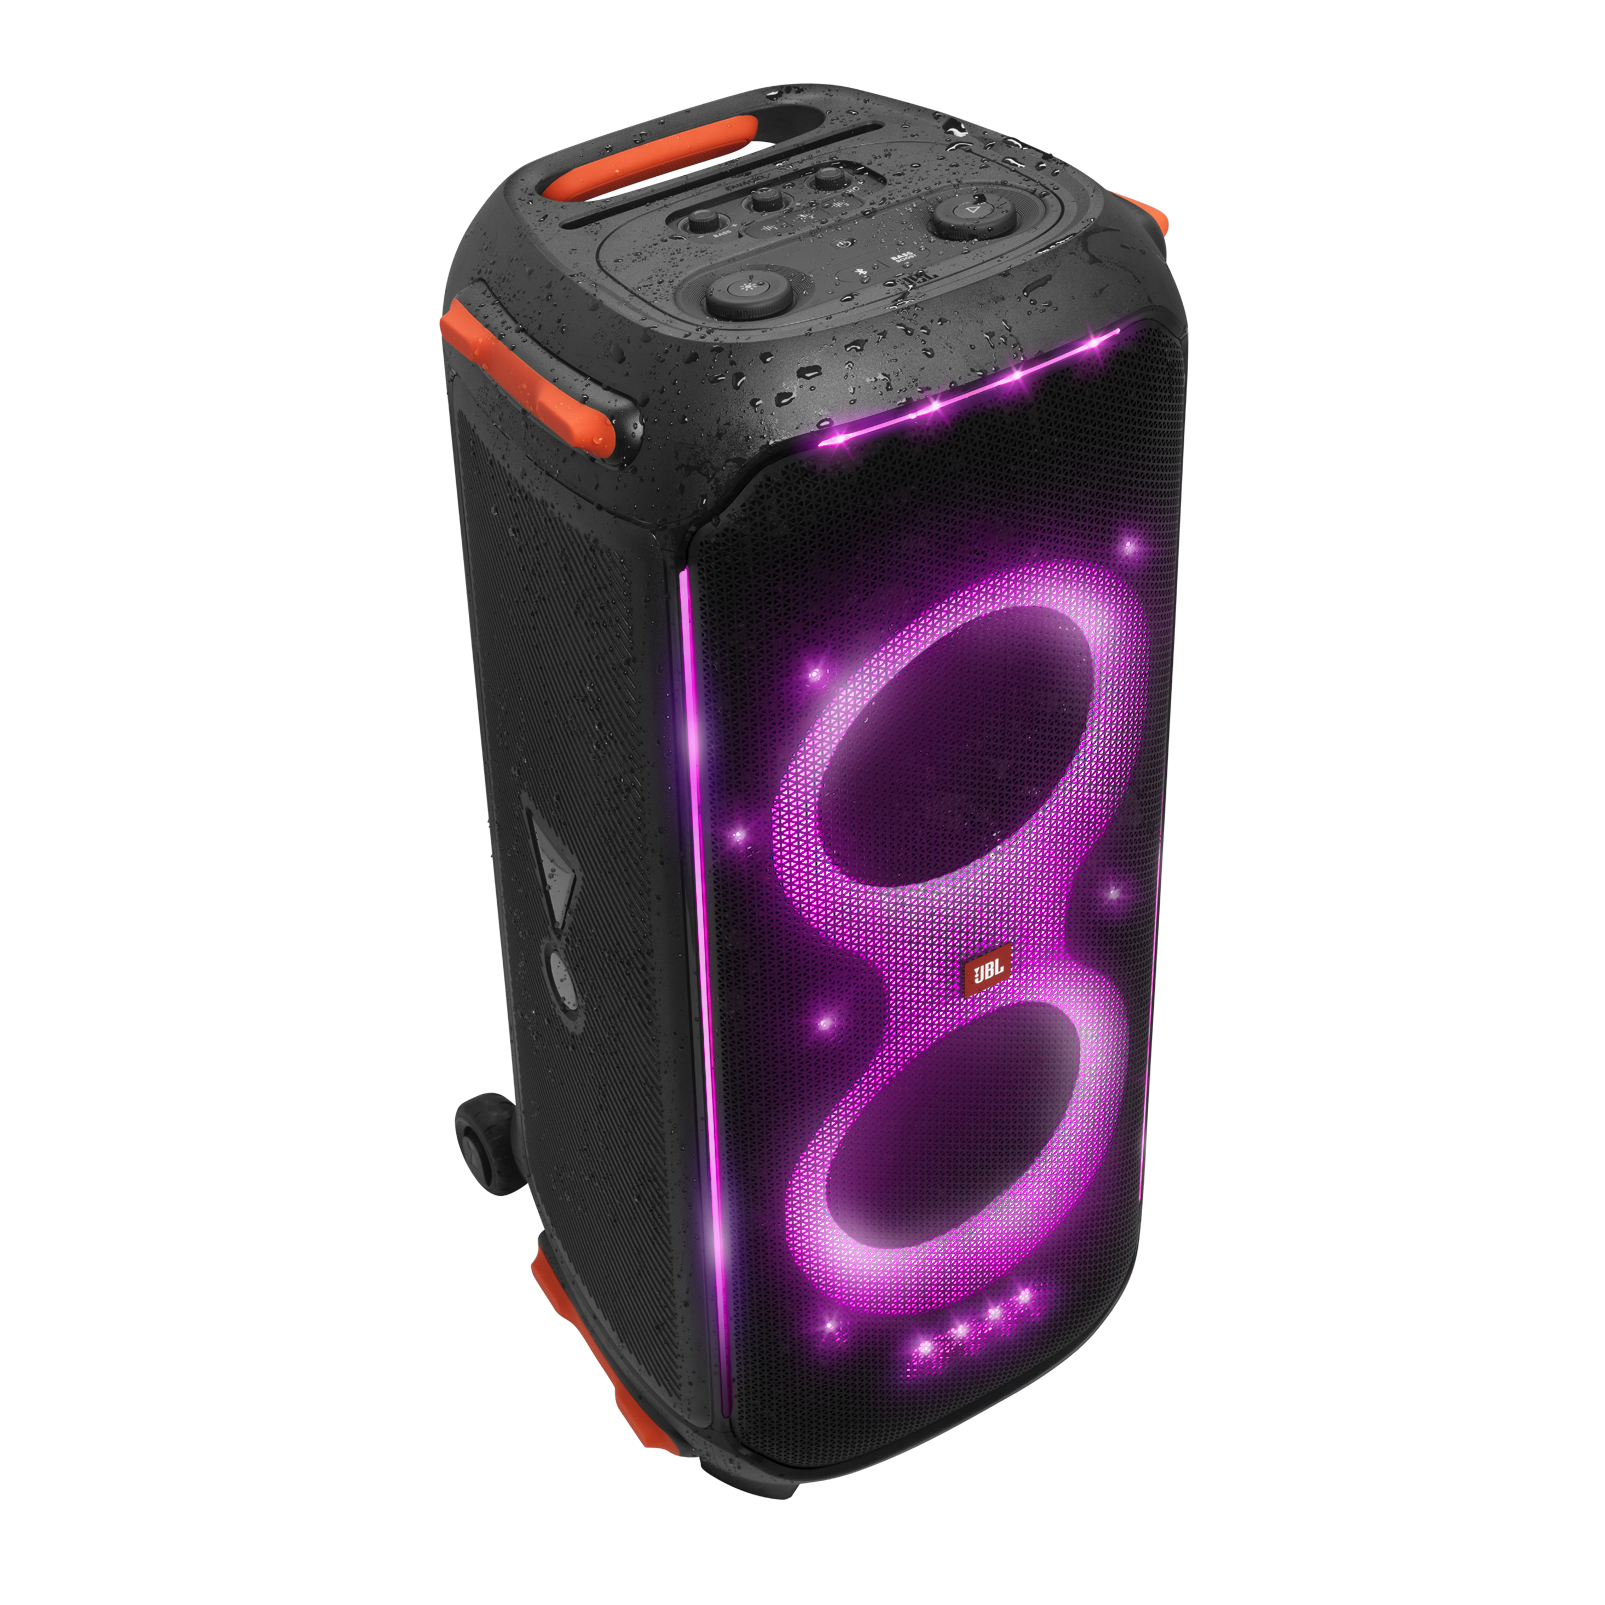 JBL Partybox 710 - Black - Party speaker with 800W RMS powerful sound, built-in lights and splashproof design. - Detailshot 5